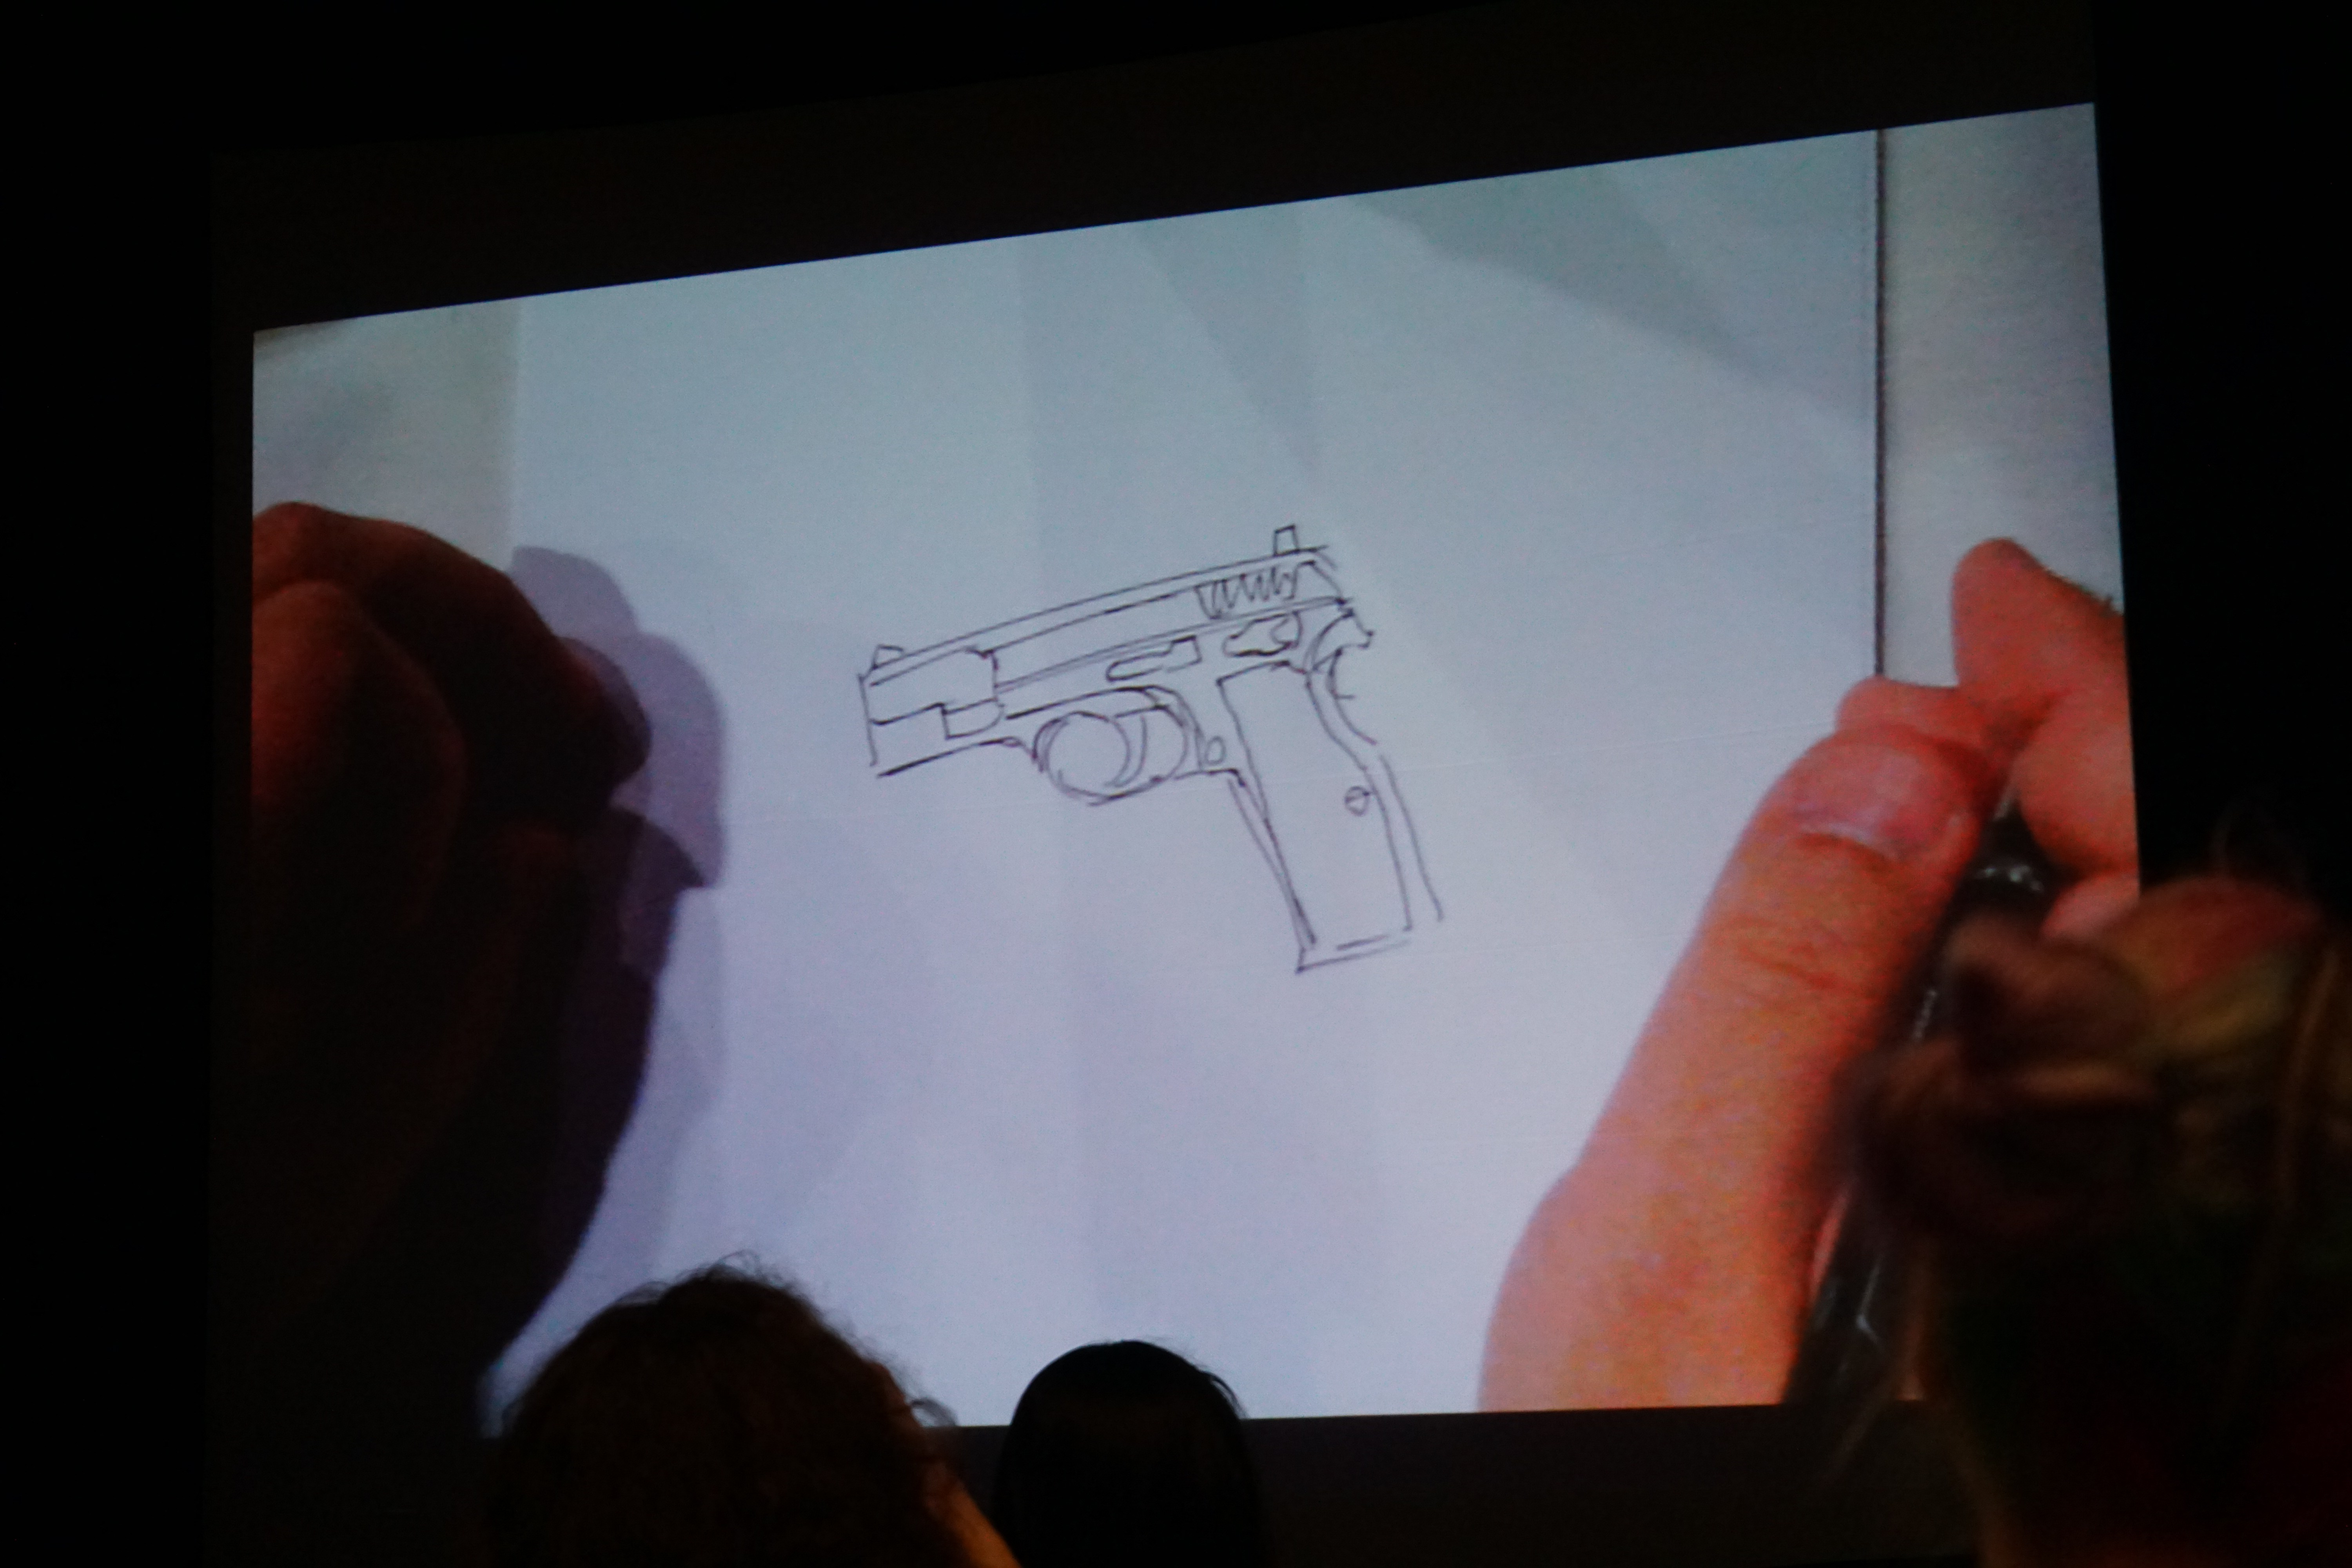 Drawn weapon strong Can drawn Sketch much cars